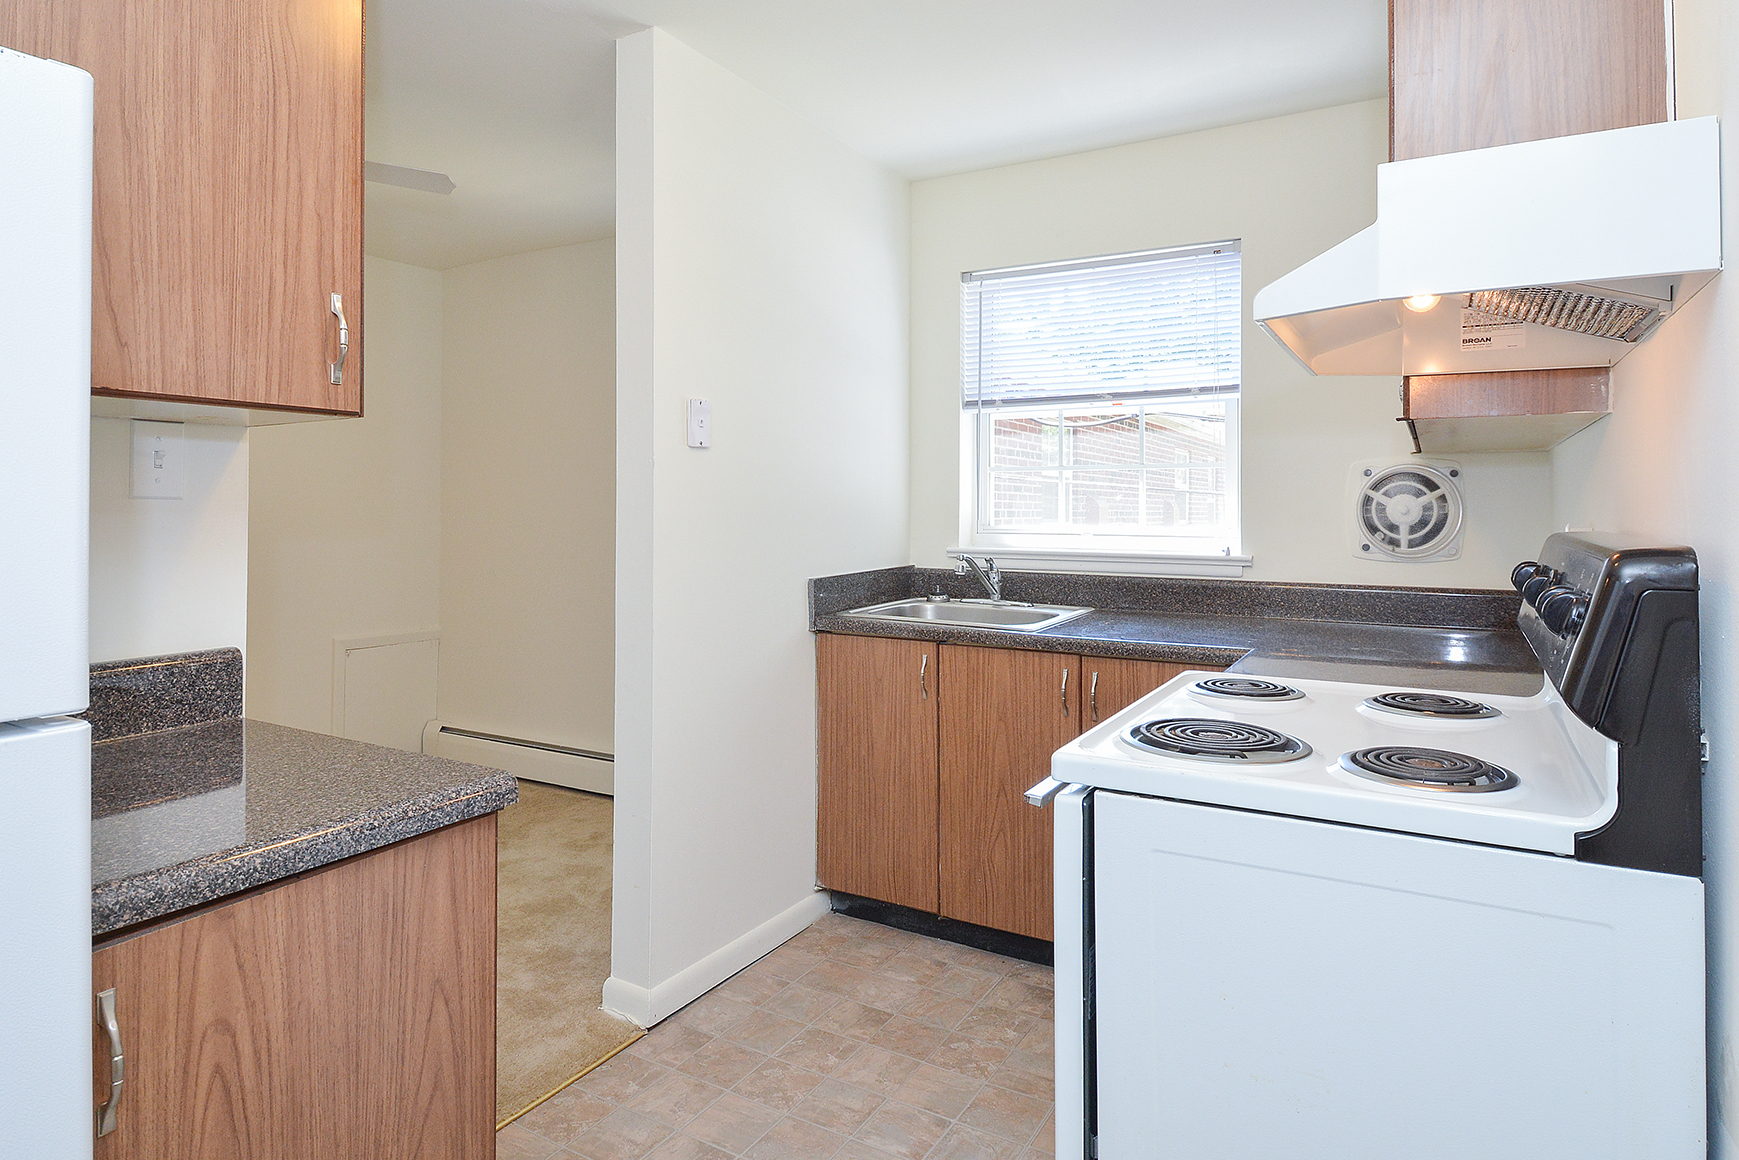 State-of-the-Art Kitchen | Apartments In Phoenixville PA | Knollwood Apartments